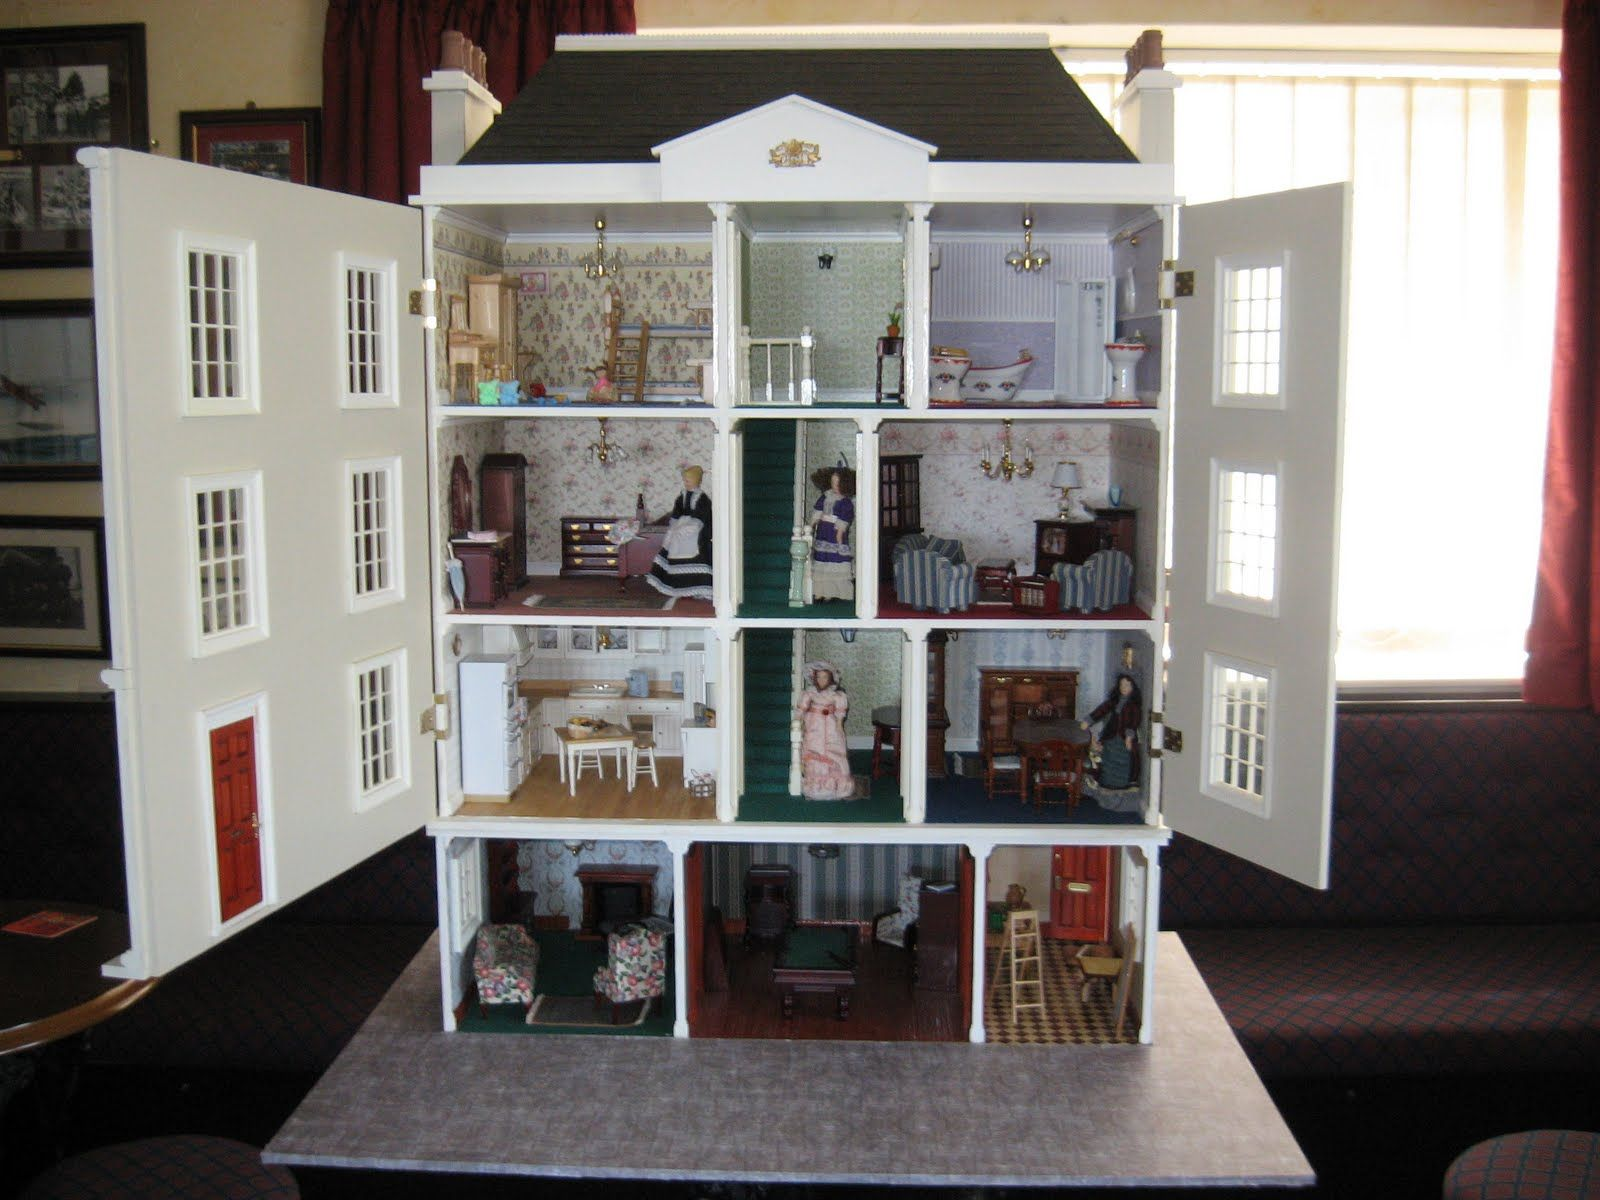 The Dolls House Big Doll Houses For Sale Small Wonders Miniatures Large